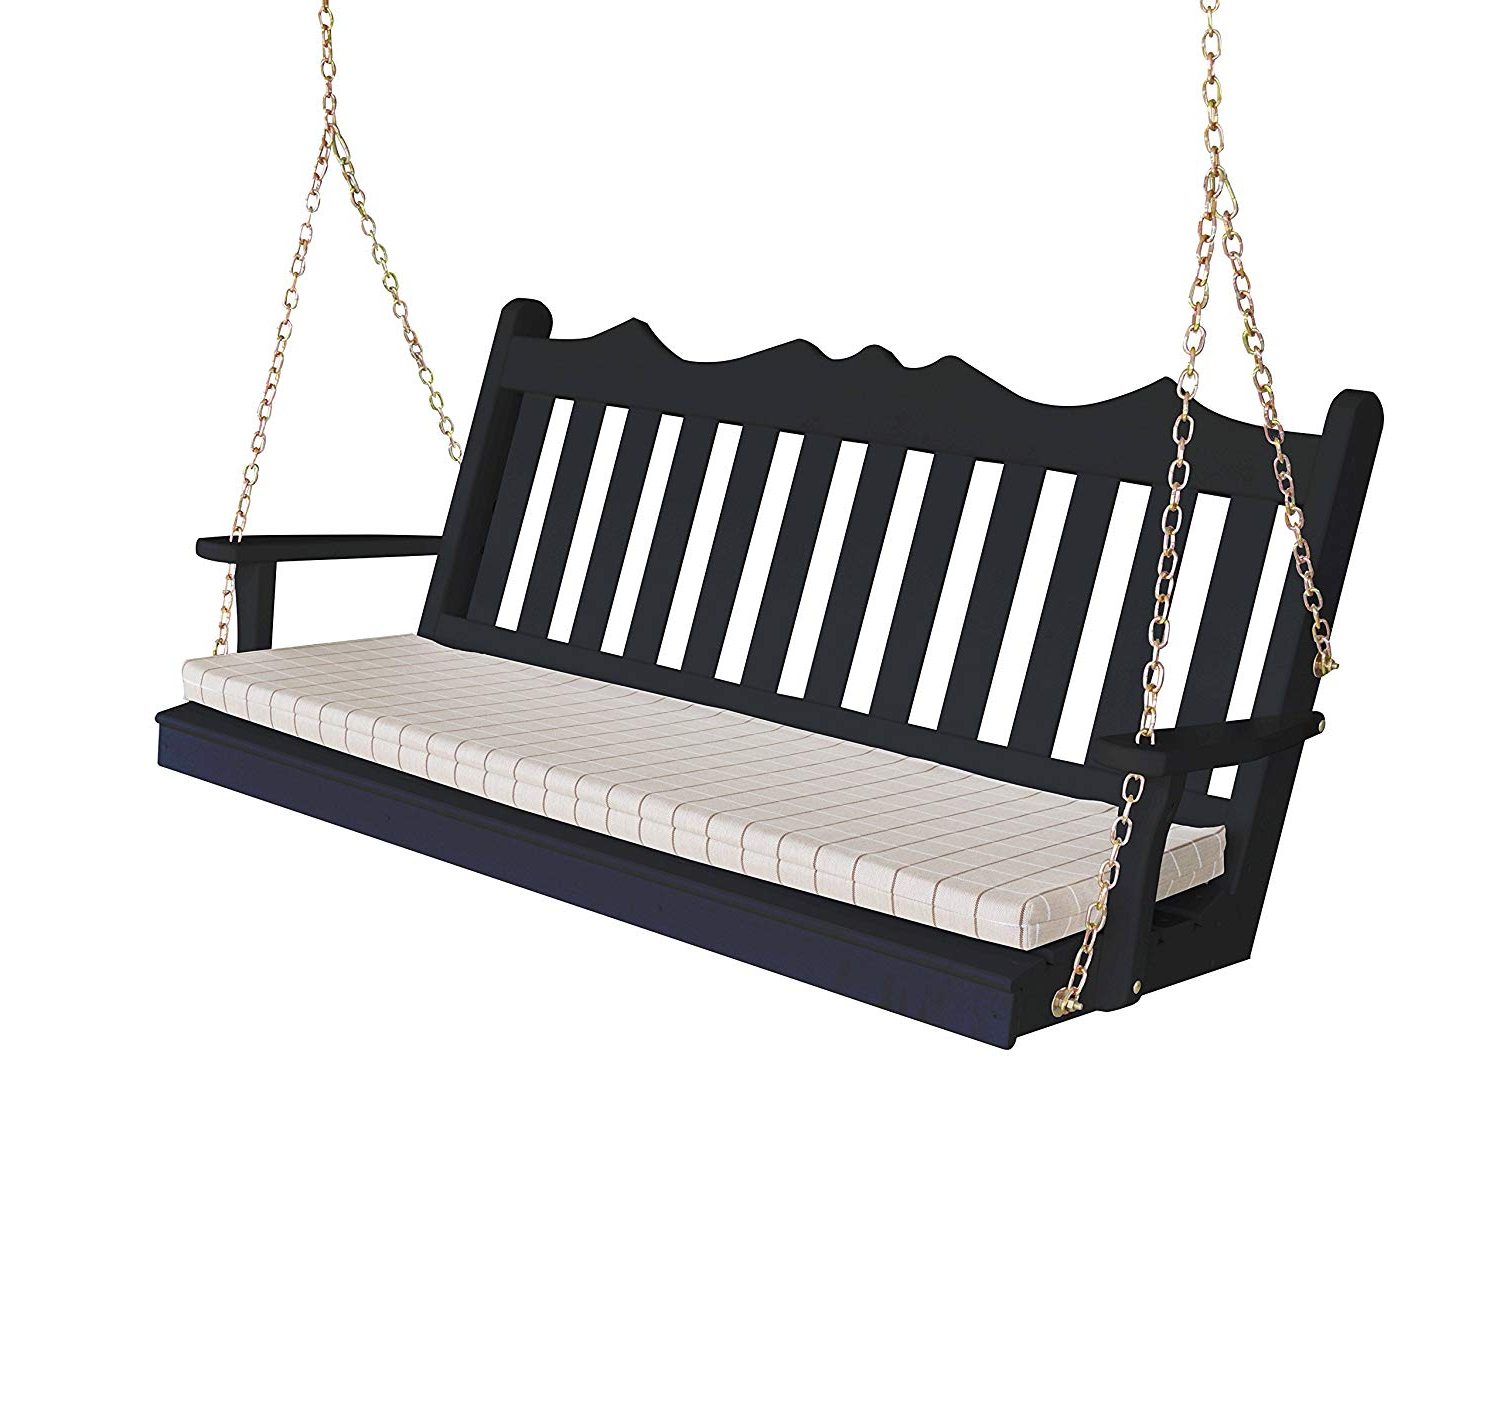 Widely Used 2 Person Black Wood Outdoor Swings With Amazon : Wood Porch Swing, Amish Outdoor Hanging Porch (View 5 of 30)